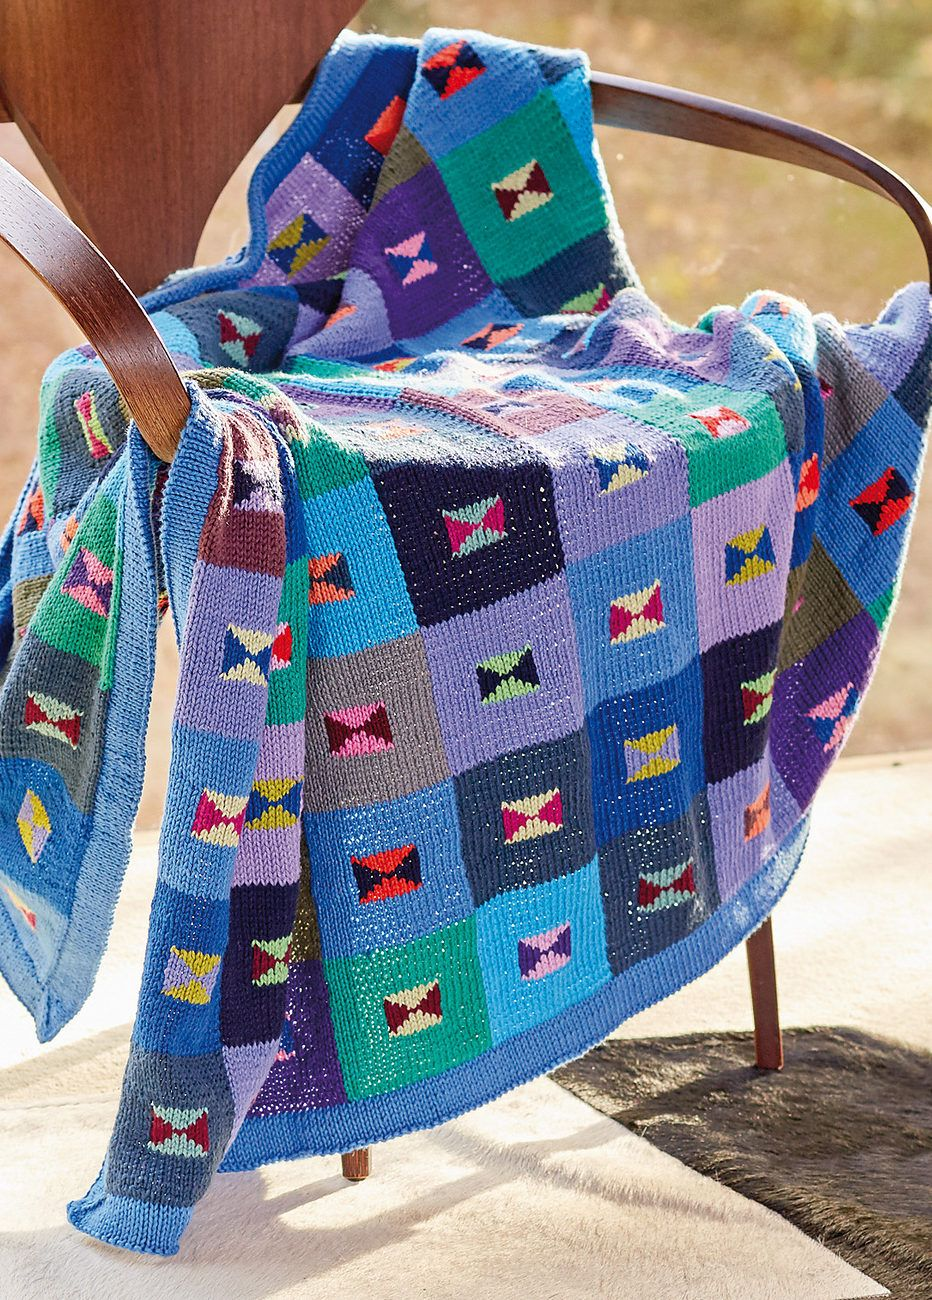 Free Knitting Pattern for Hourglass Blanket - Patchwork-inspired ...